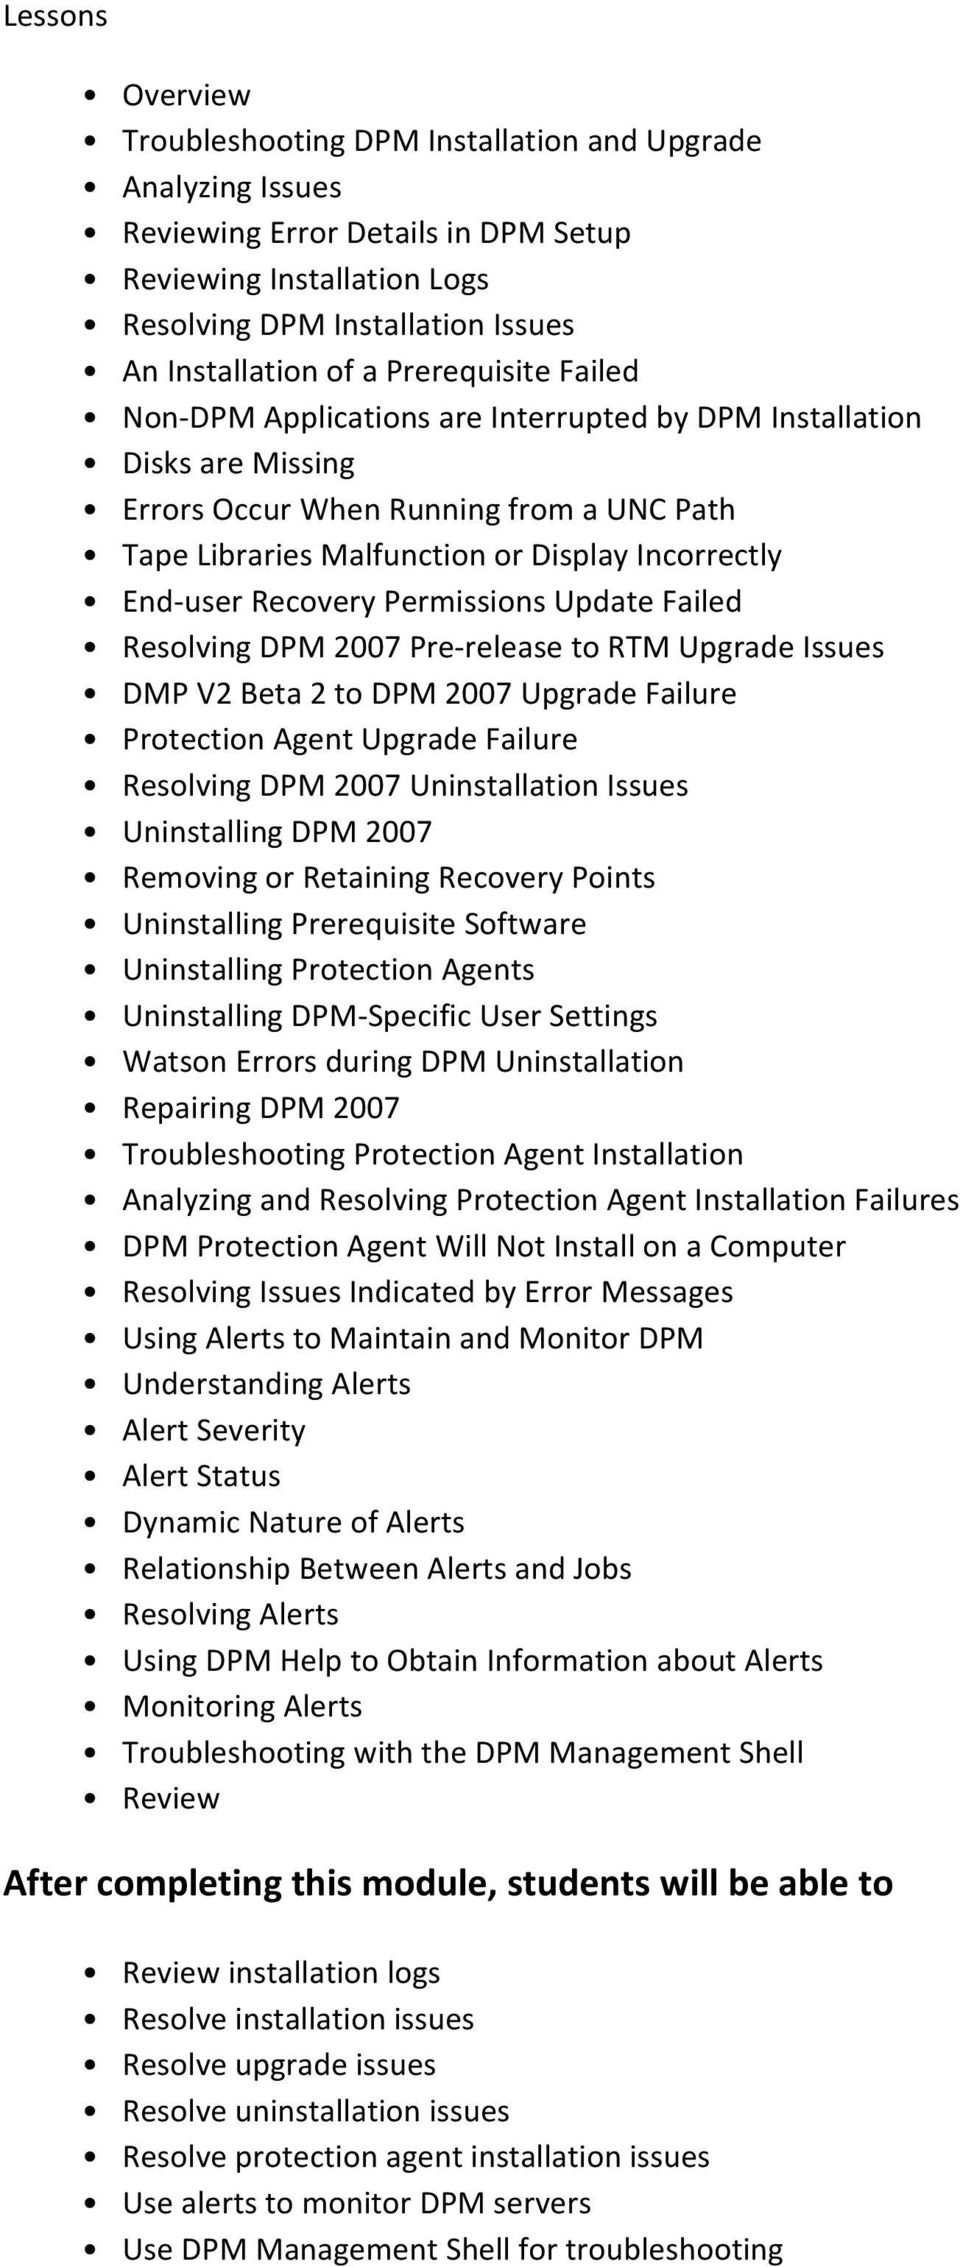 Recovery Permissions Update Failed Resolving DPM 2007 Pre-release to RTM Upgrade Issues DMP V2 Beta 2 to DPM 2007 Upgrade Failure Protection Agent Upgrade Failure Resolving DPM 2007 Uninstallation